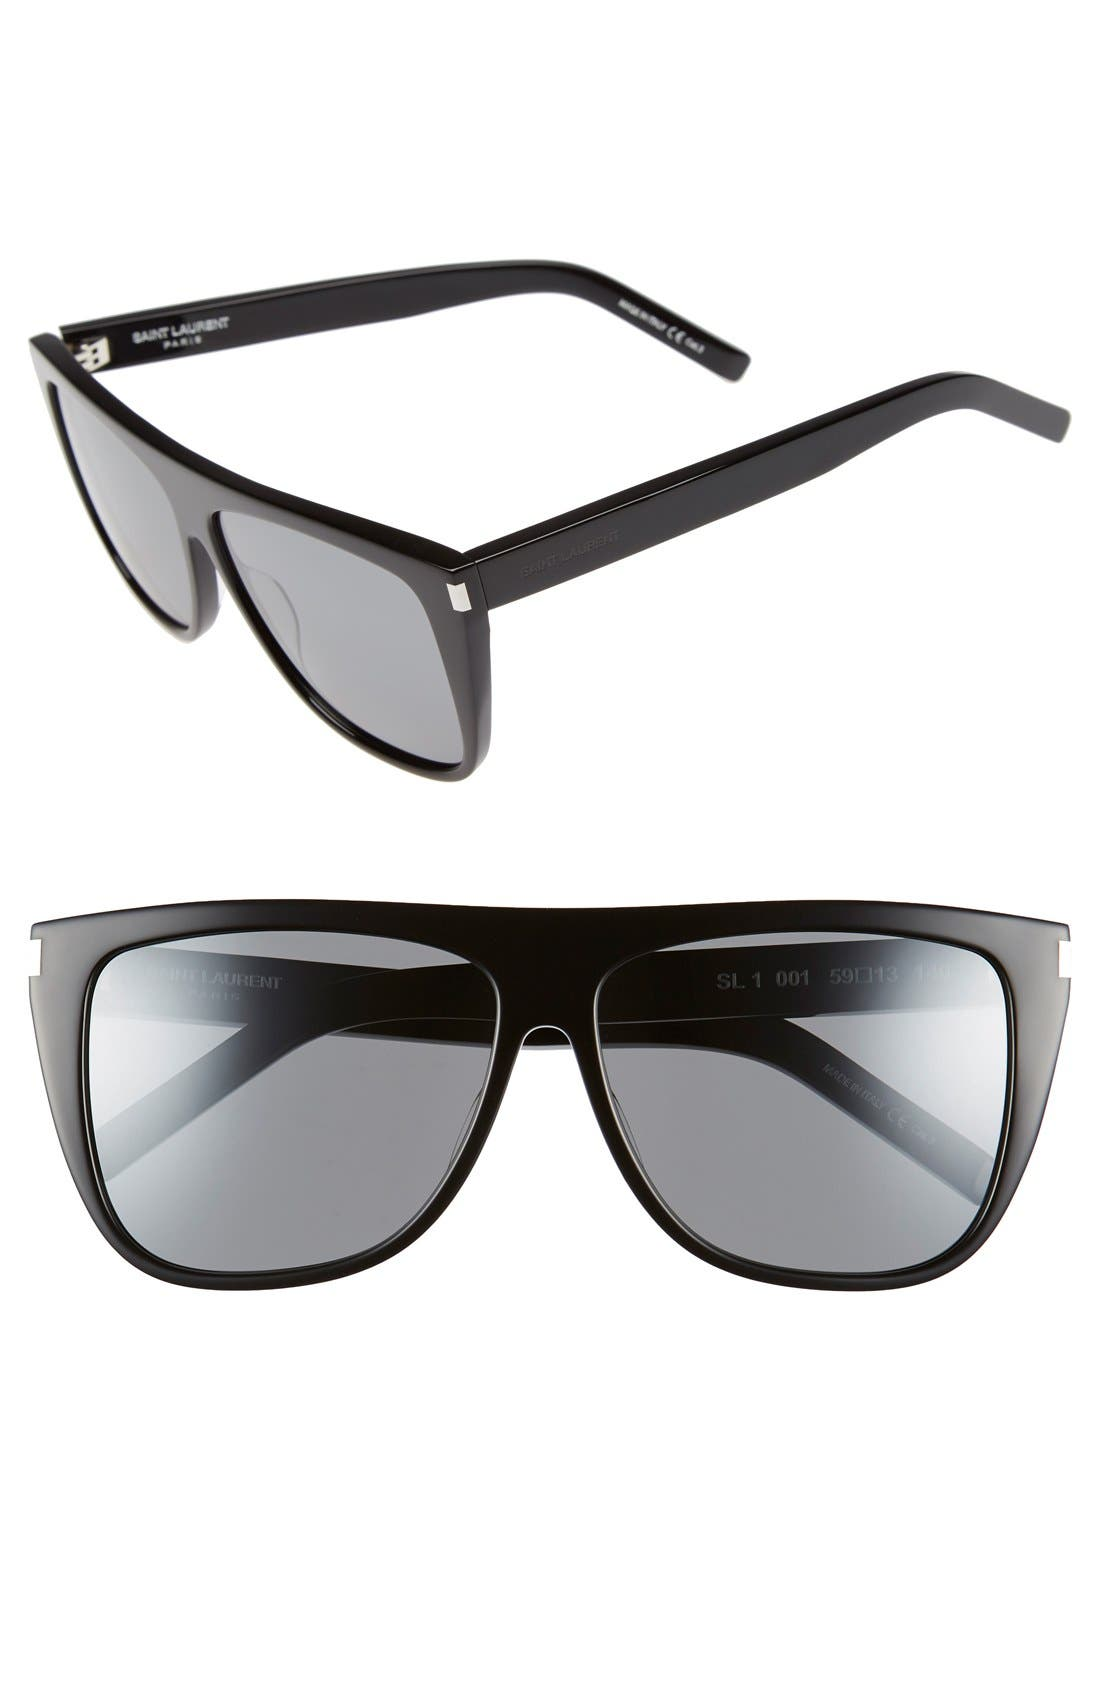 SL1 59mm Flat Top Sunglasses,                             Main thumbnail 1, color,                             Black/ Silver